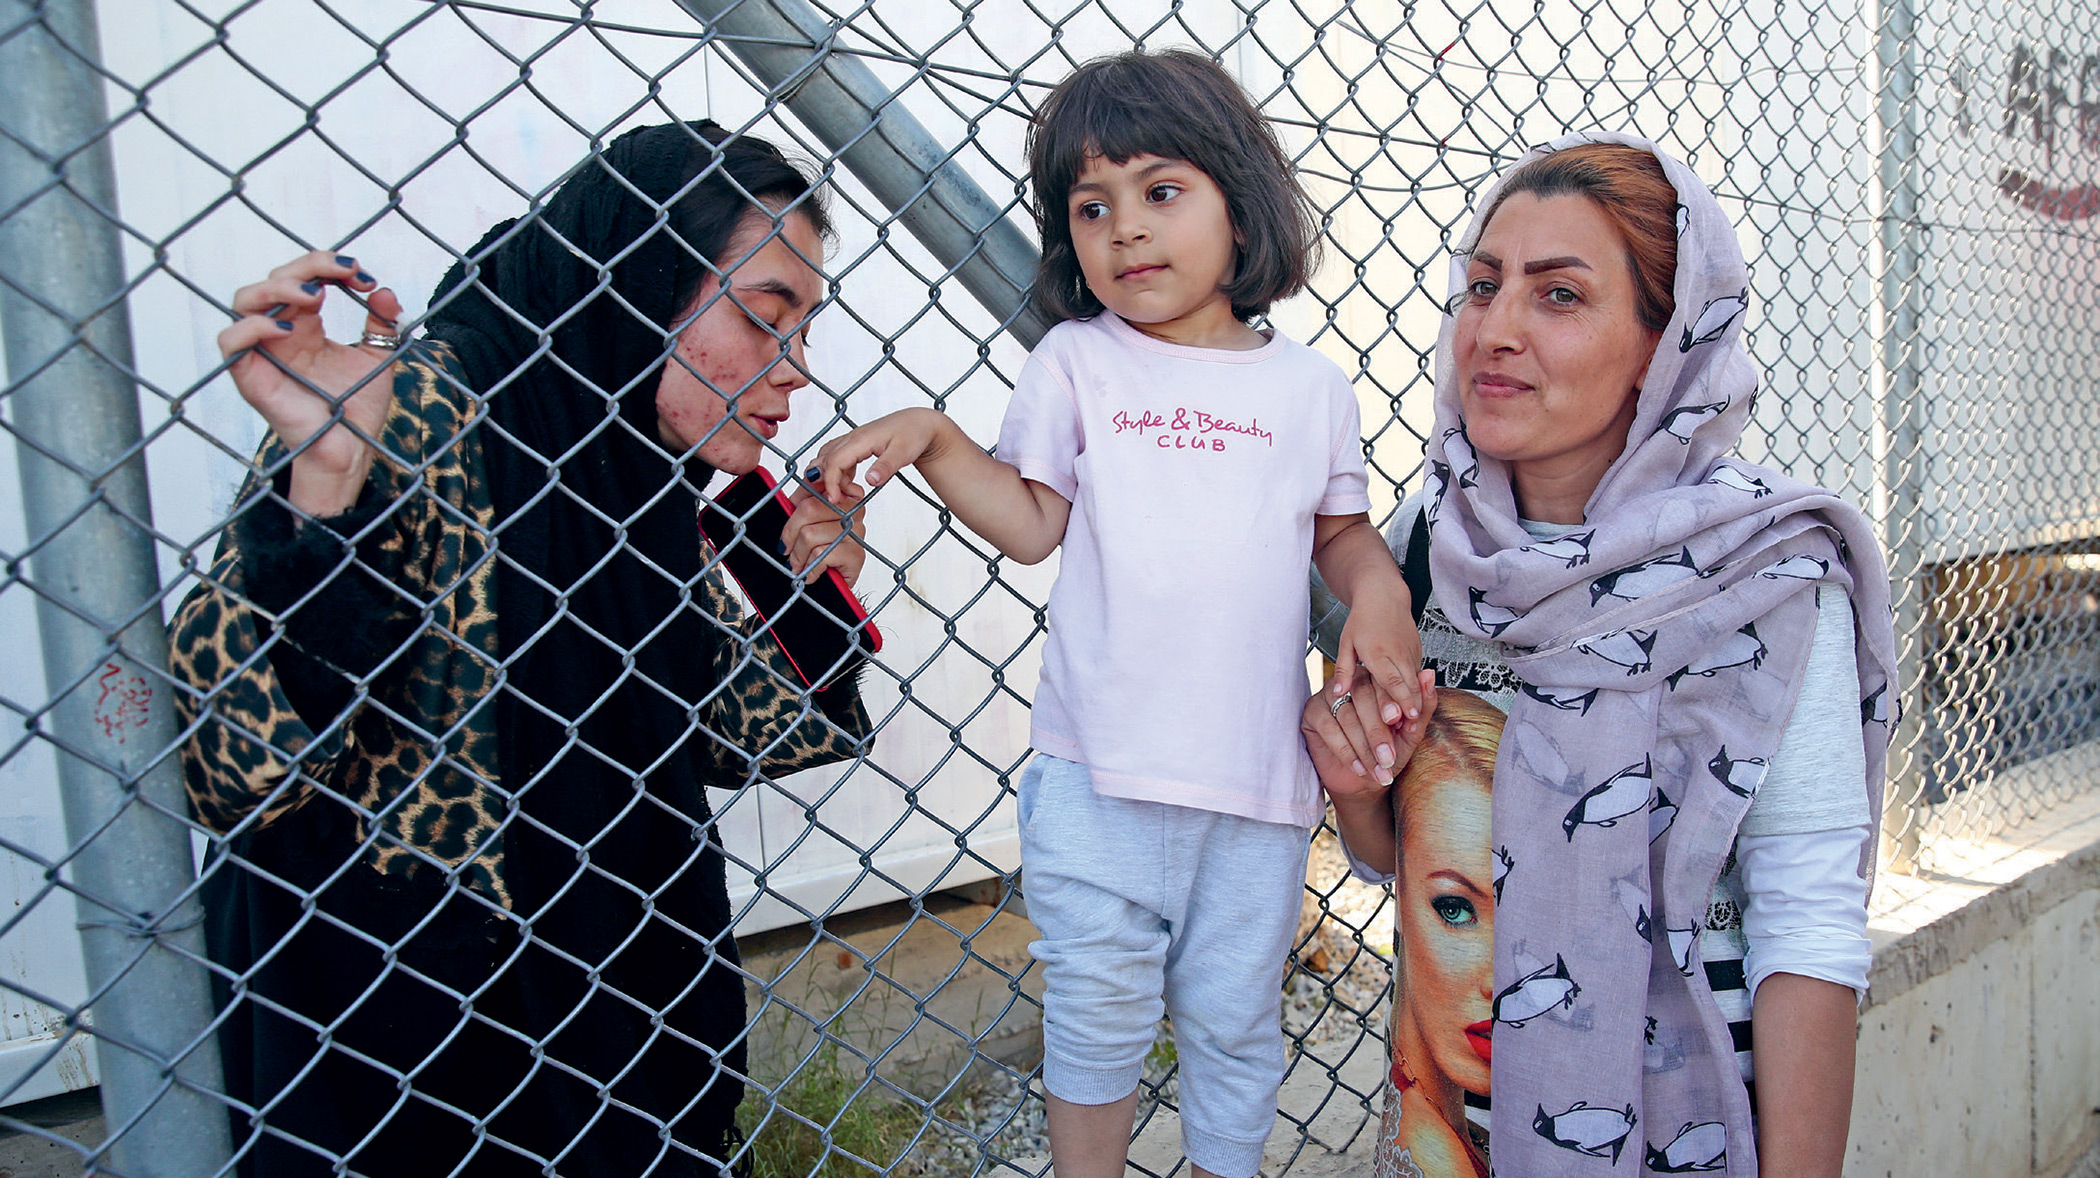 Women at Moria camp on the Greek island of Lesvos, in October 2019. Tens of thousands of migrant travellers have been trapped in overcrowded camps on the Greek islands since 2016.